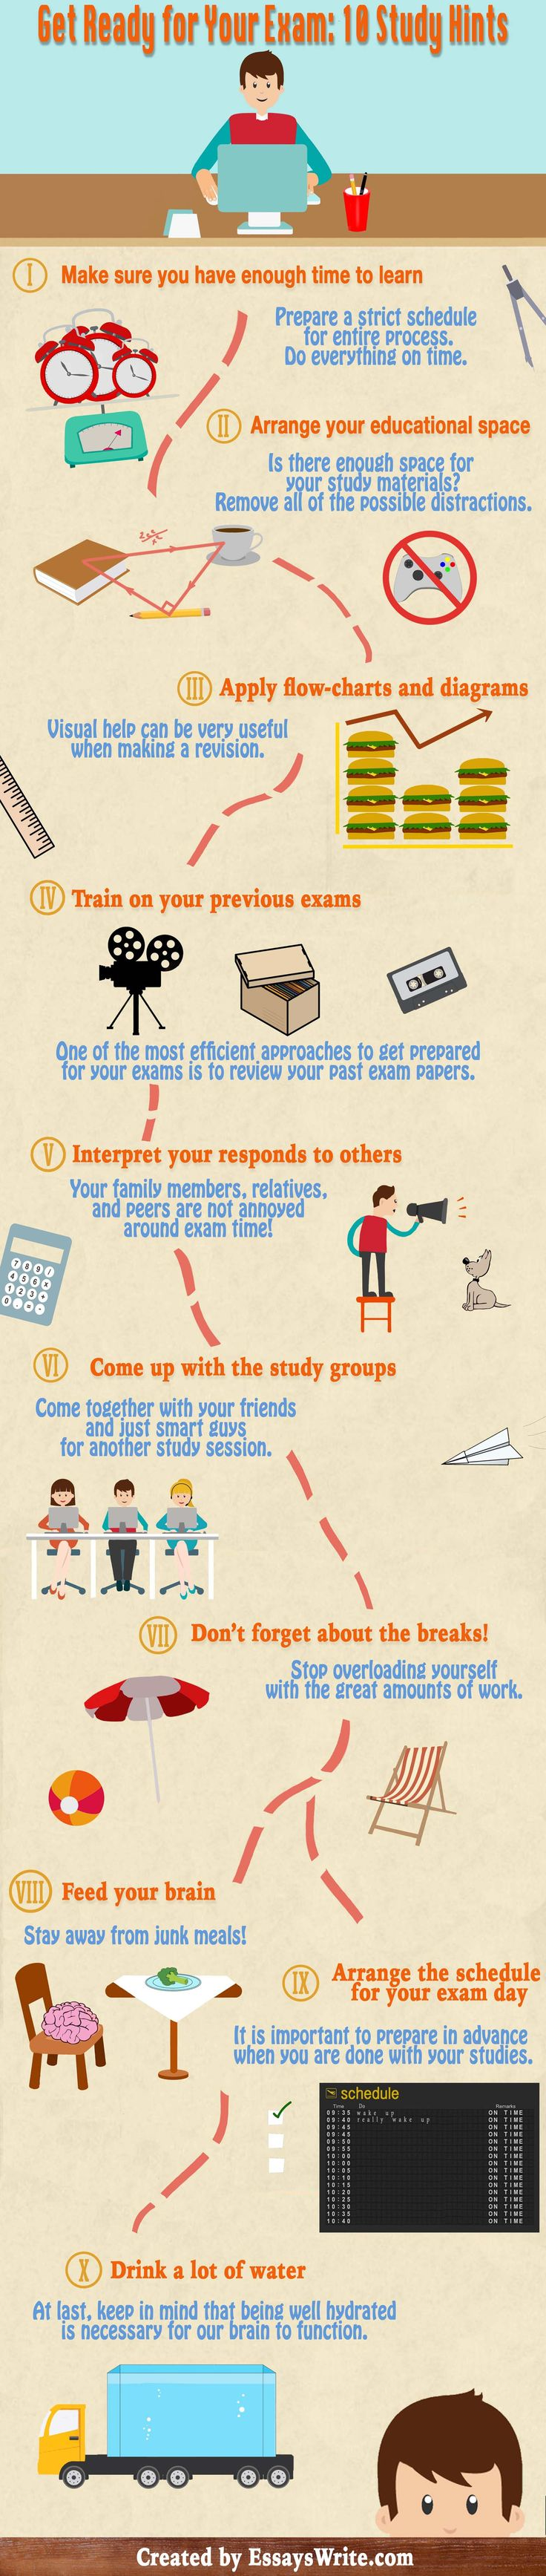 Exam preparation is an art to master if you want to get enrolled in school. Unfortunately, the road is bumpy, and there are too many hurdles on the way. The EssaysWrite team recommends improving your time management skills, arranging your educational space when both regular exercise and physical activity is combined with short breaks and reviewing your past exam papers, remembering the importance of visualizing information in order to operate.